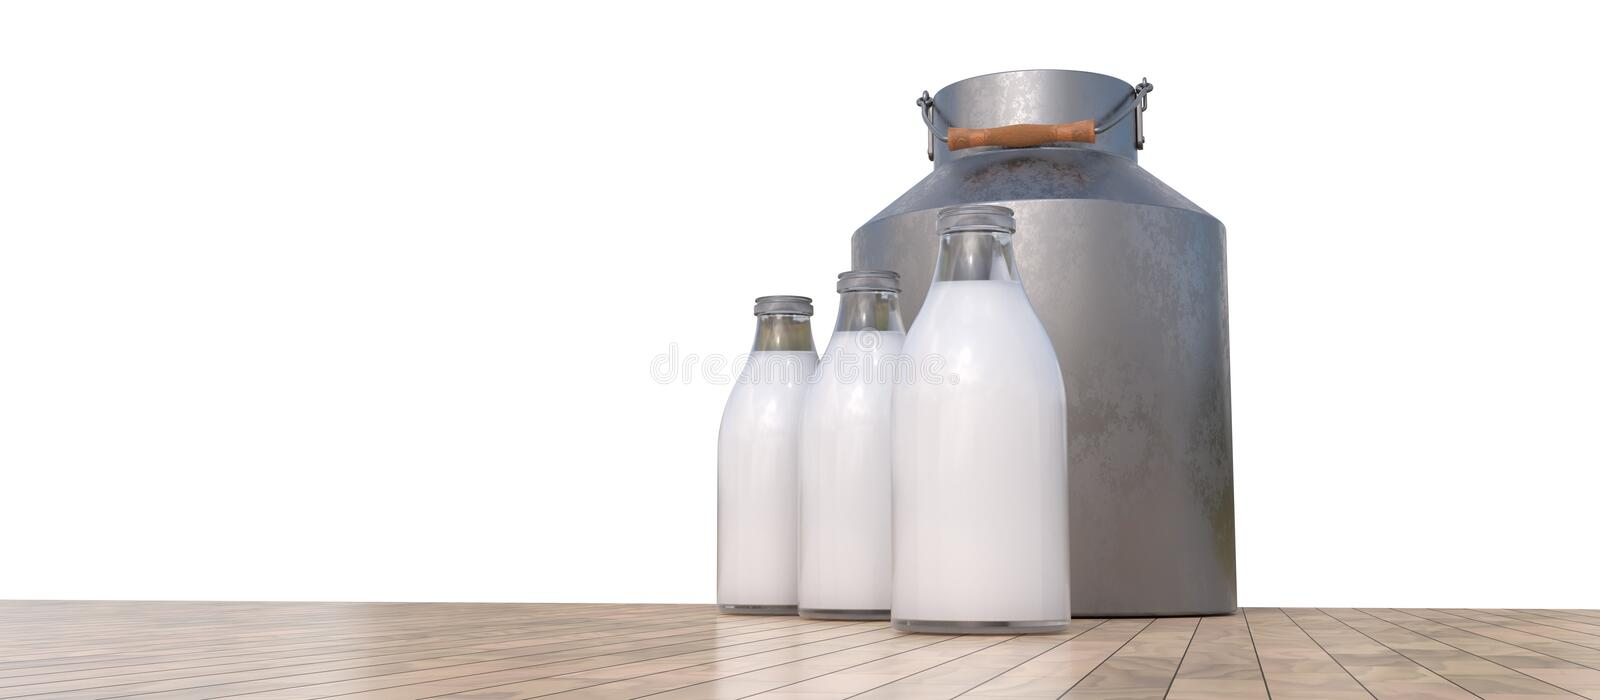 Bottles of milk and metal container. 3D rendered illustration royalty free illustration